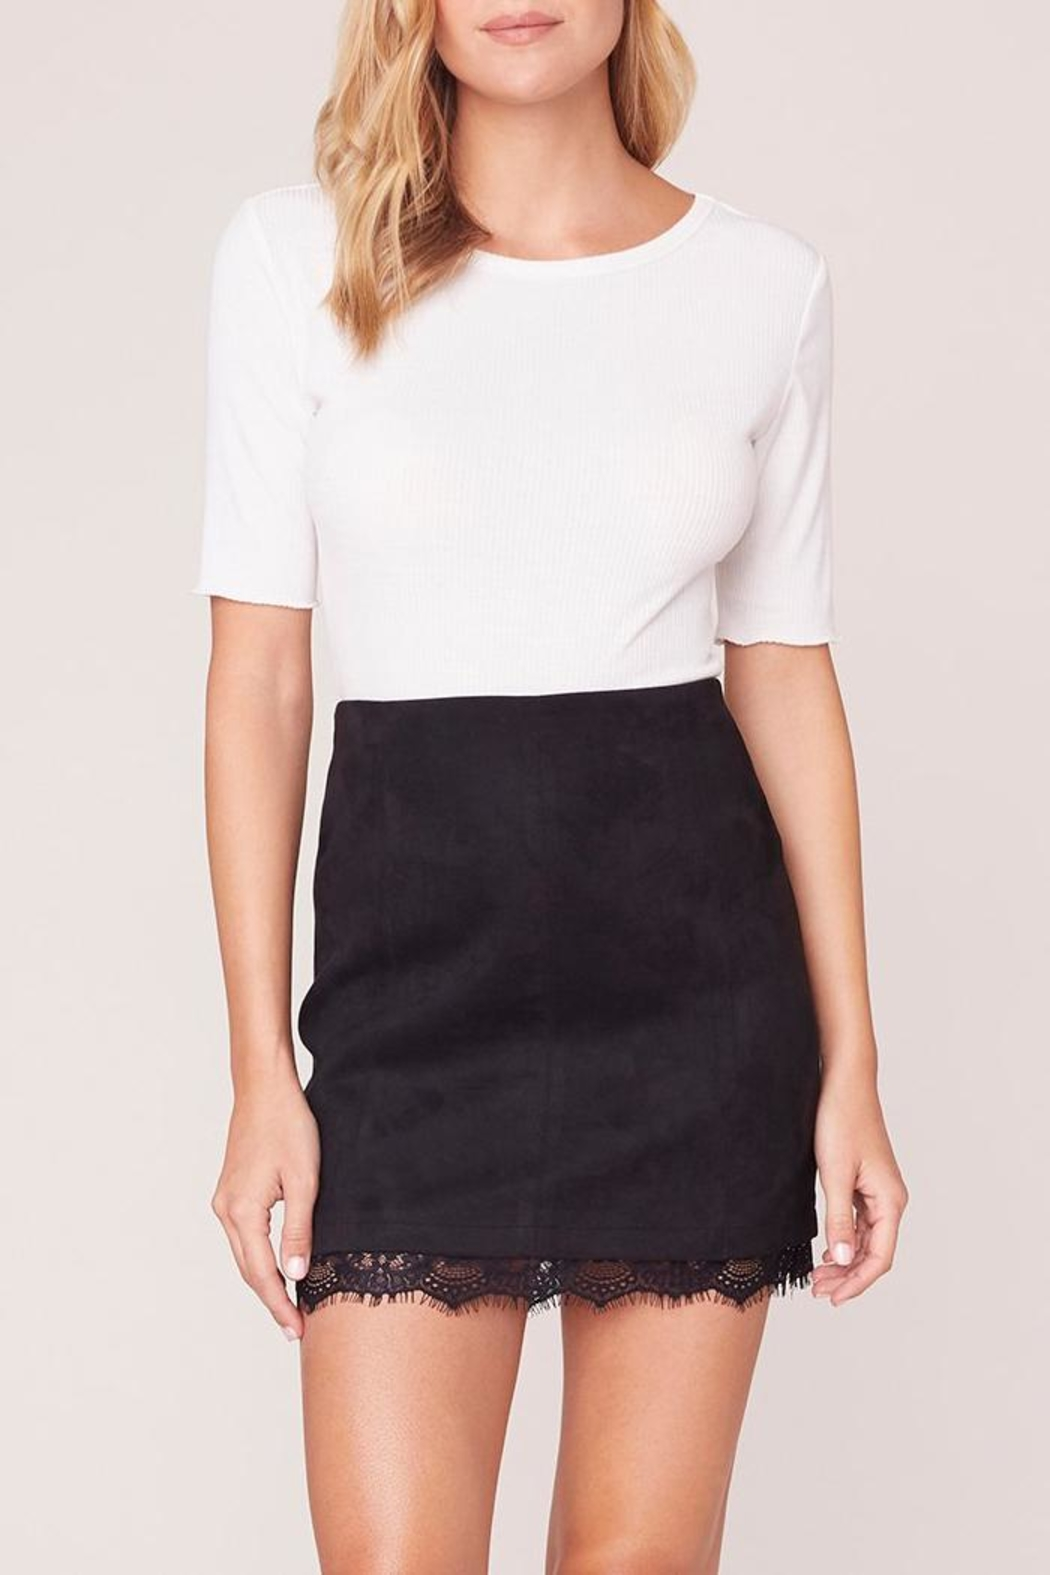 Jack by BB Dakota Lace Trim Skirt - Main Image